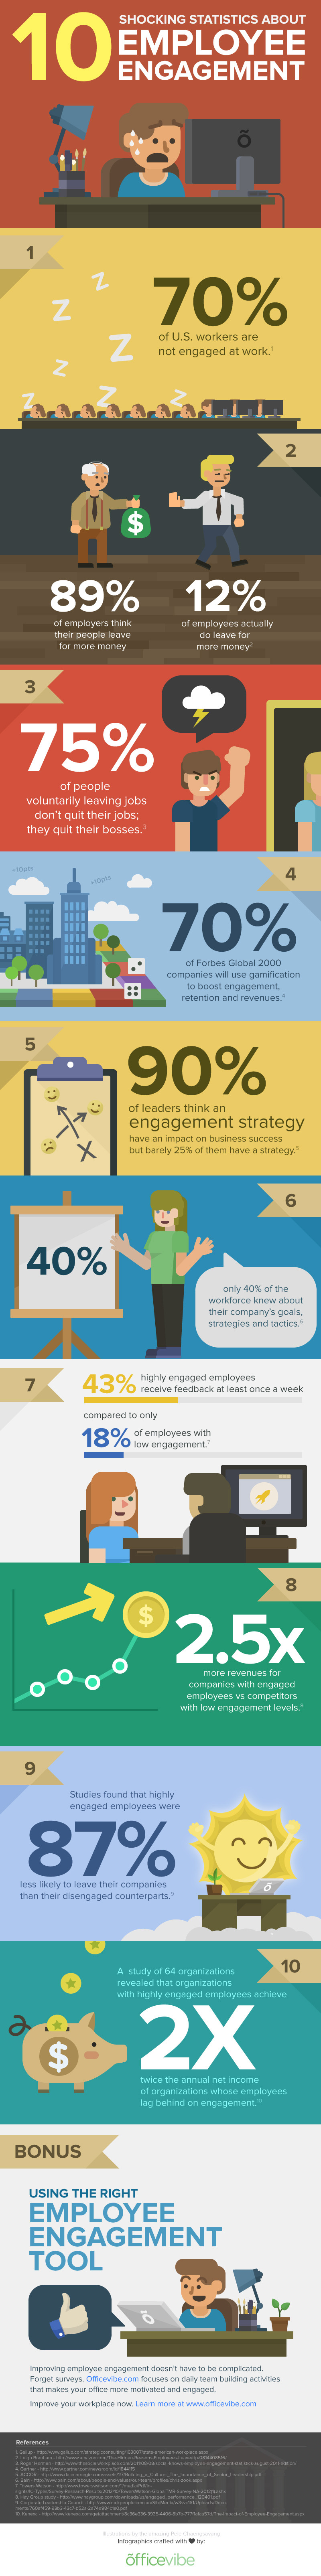 Show Me The Money? Actually, Employee Engagement Is Not About The Money